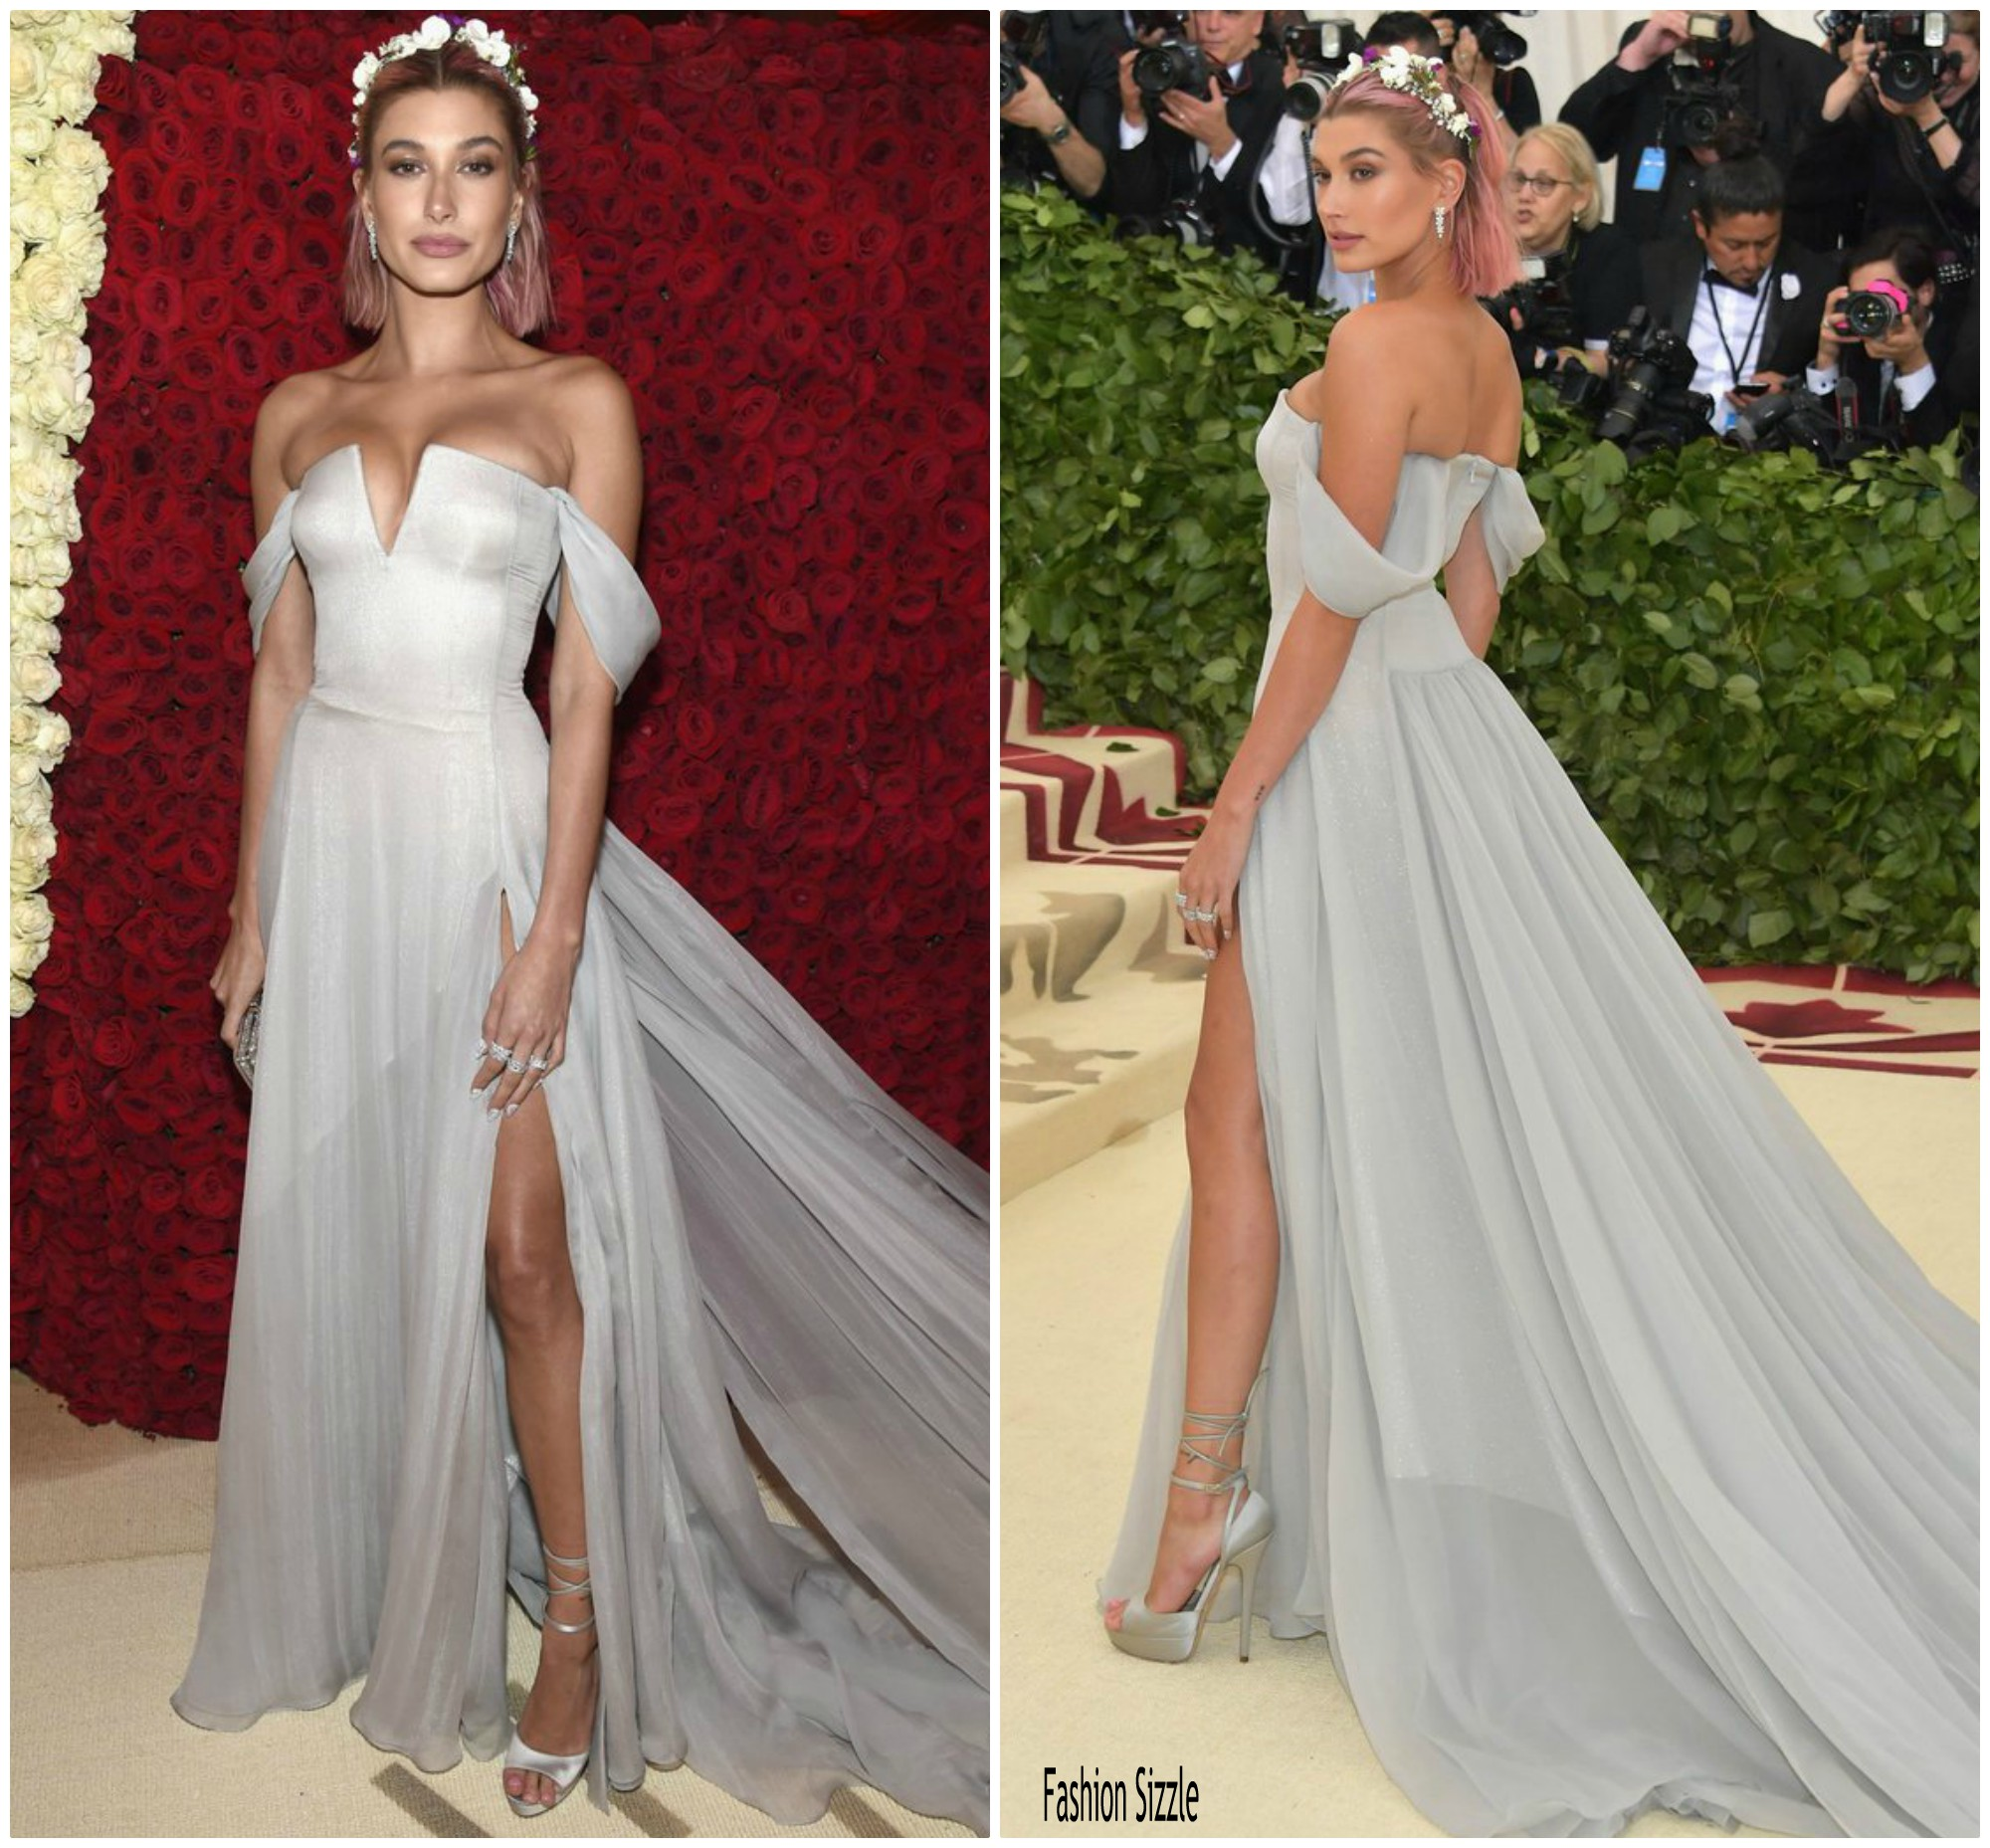 hailey-baldwin-in-tommy-hilfiger-2018-met-gala